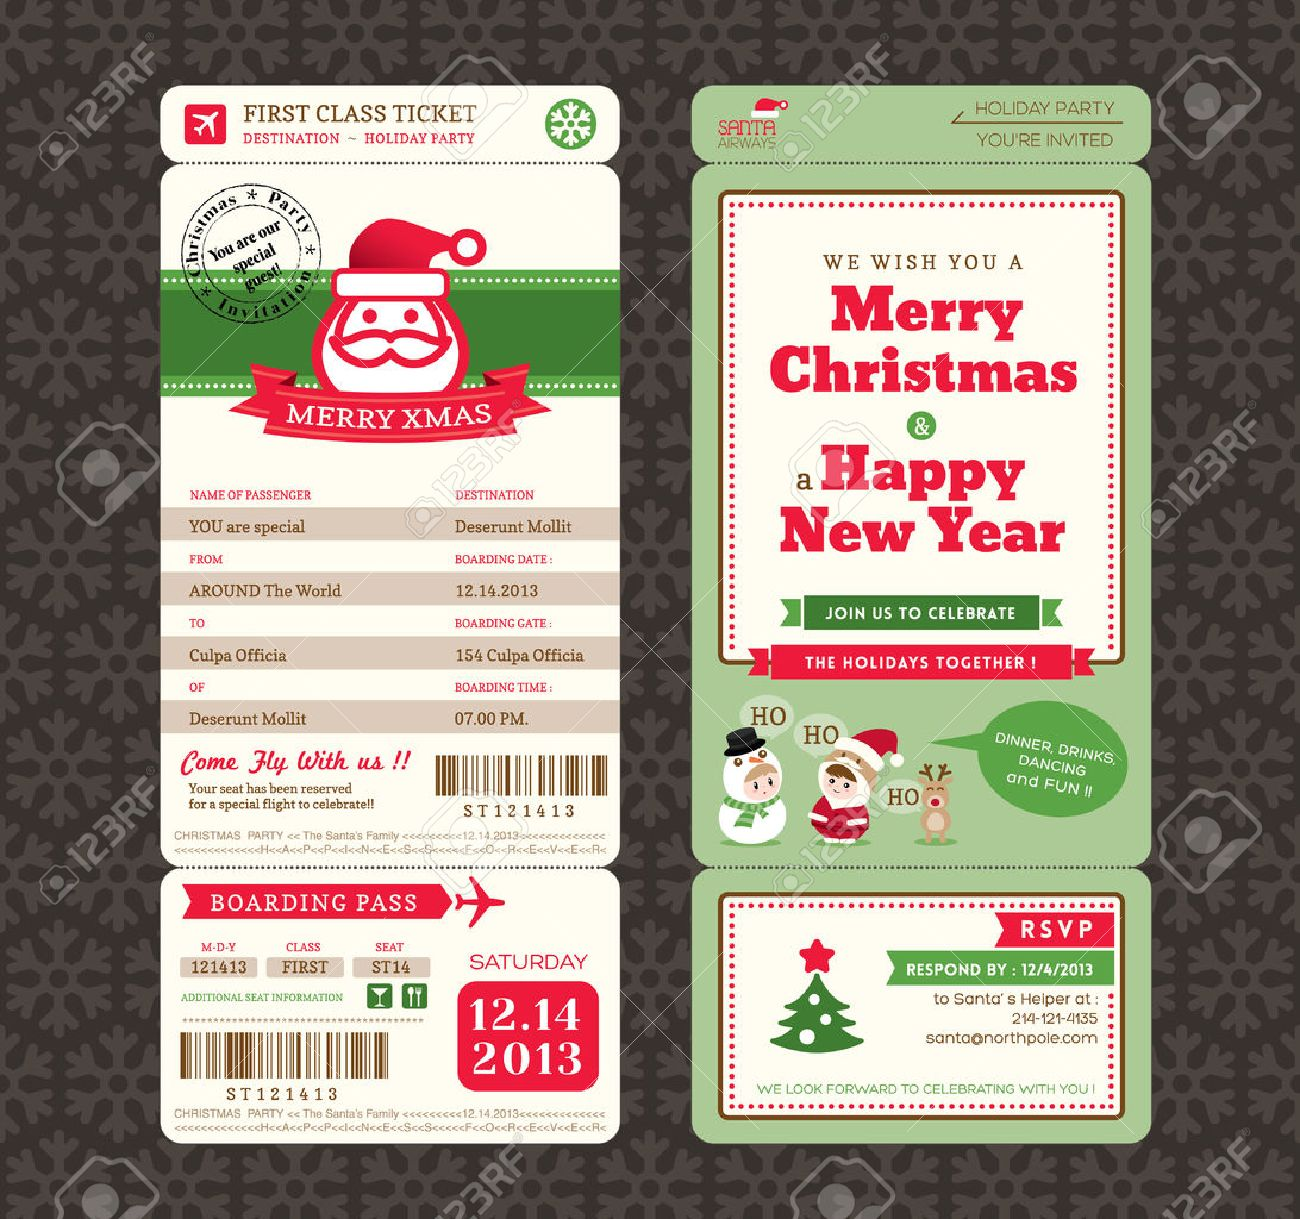 Christmas Card Design Boarding Pass Ticket Template Royalty Free – Design Tickets Template